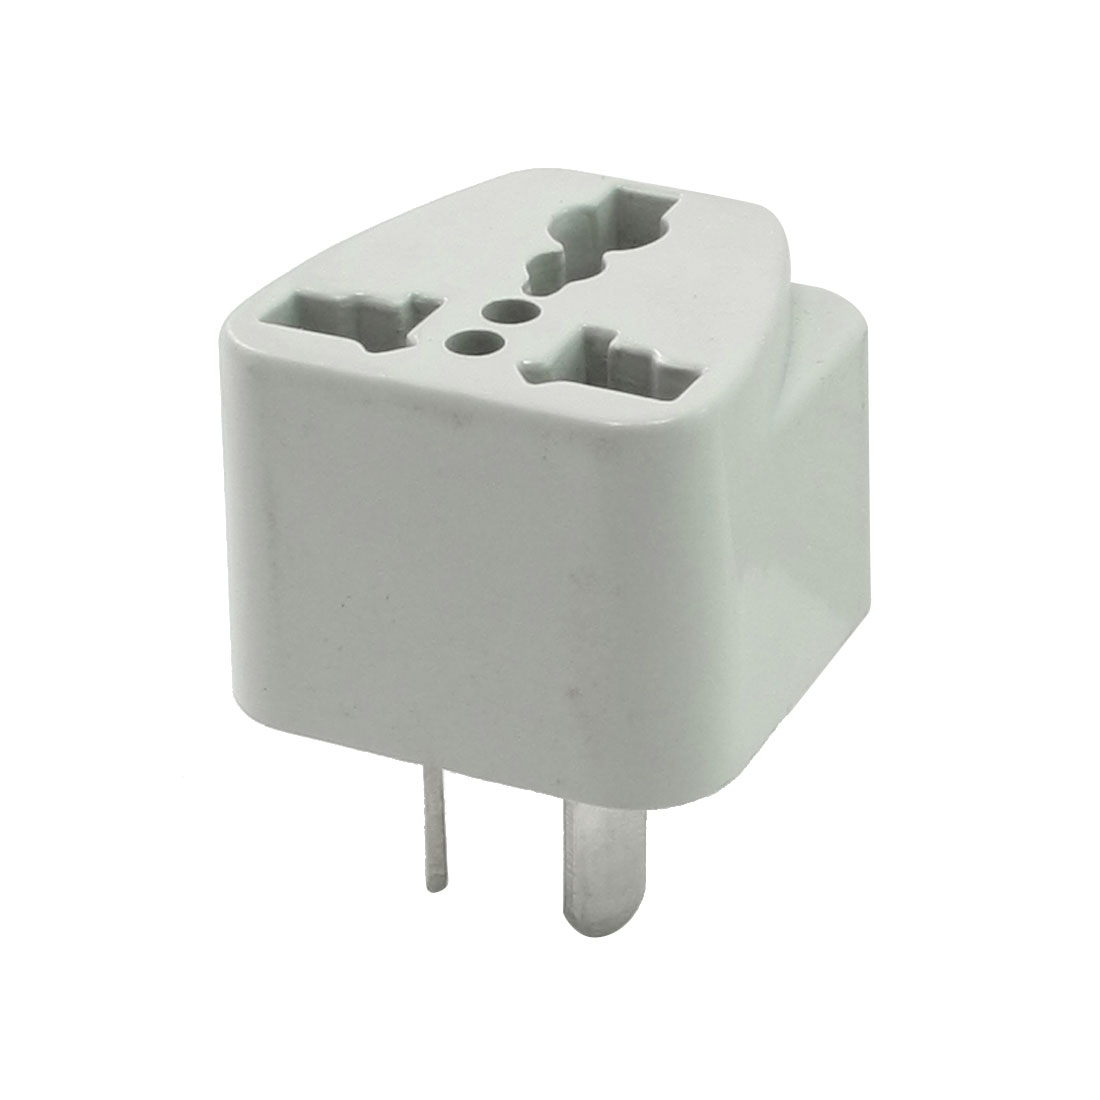 AU Plug to EU US UK Italy Socket Travel Adapter Convertor AC 250V 10A